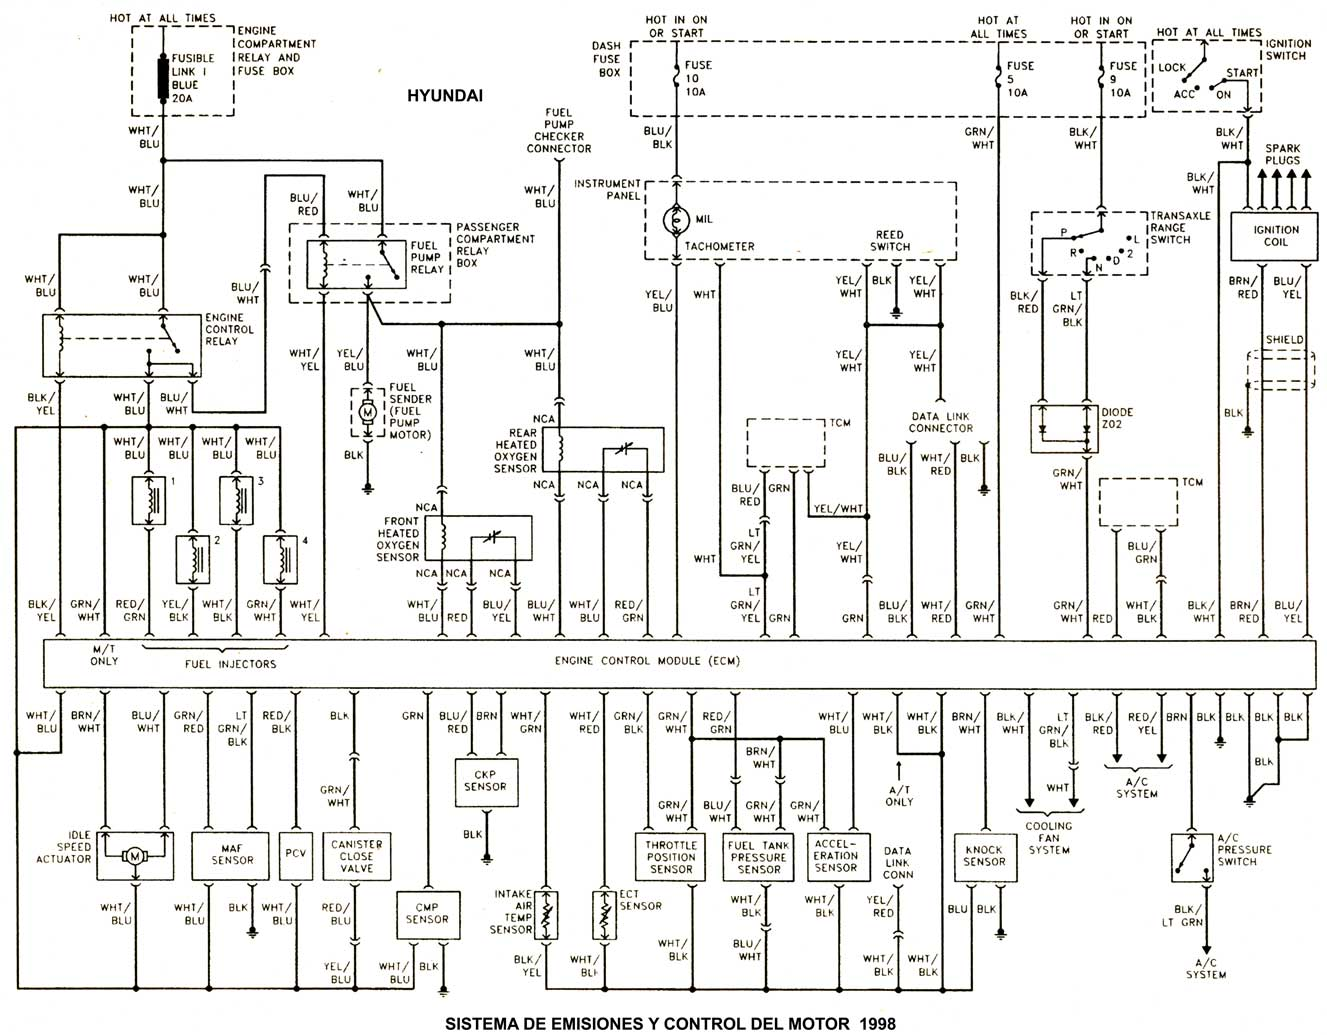 Wiring Diagram For Hyundai Elantra